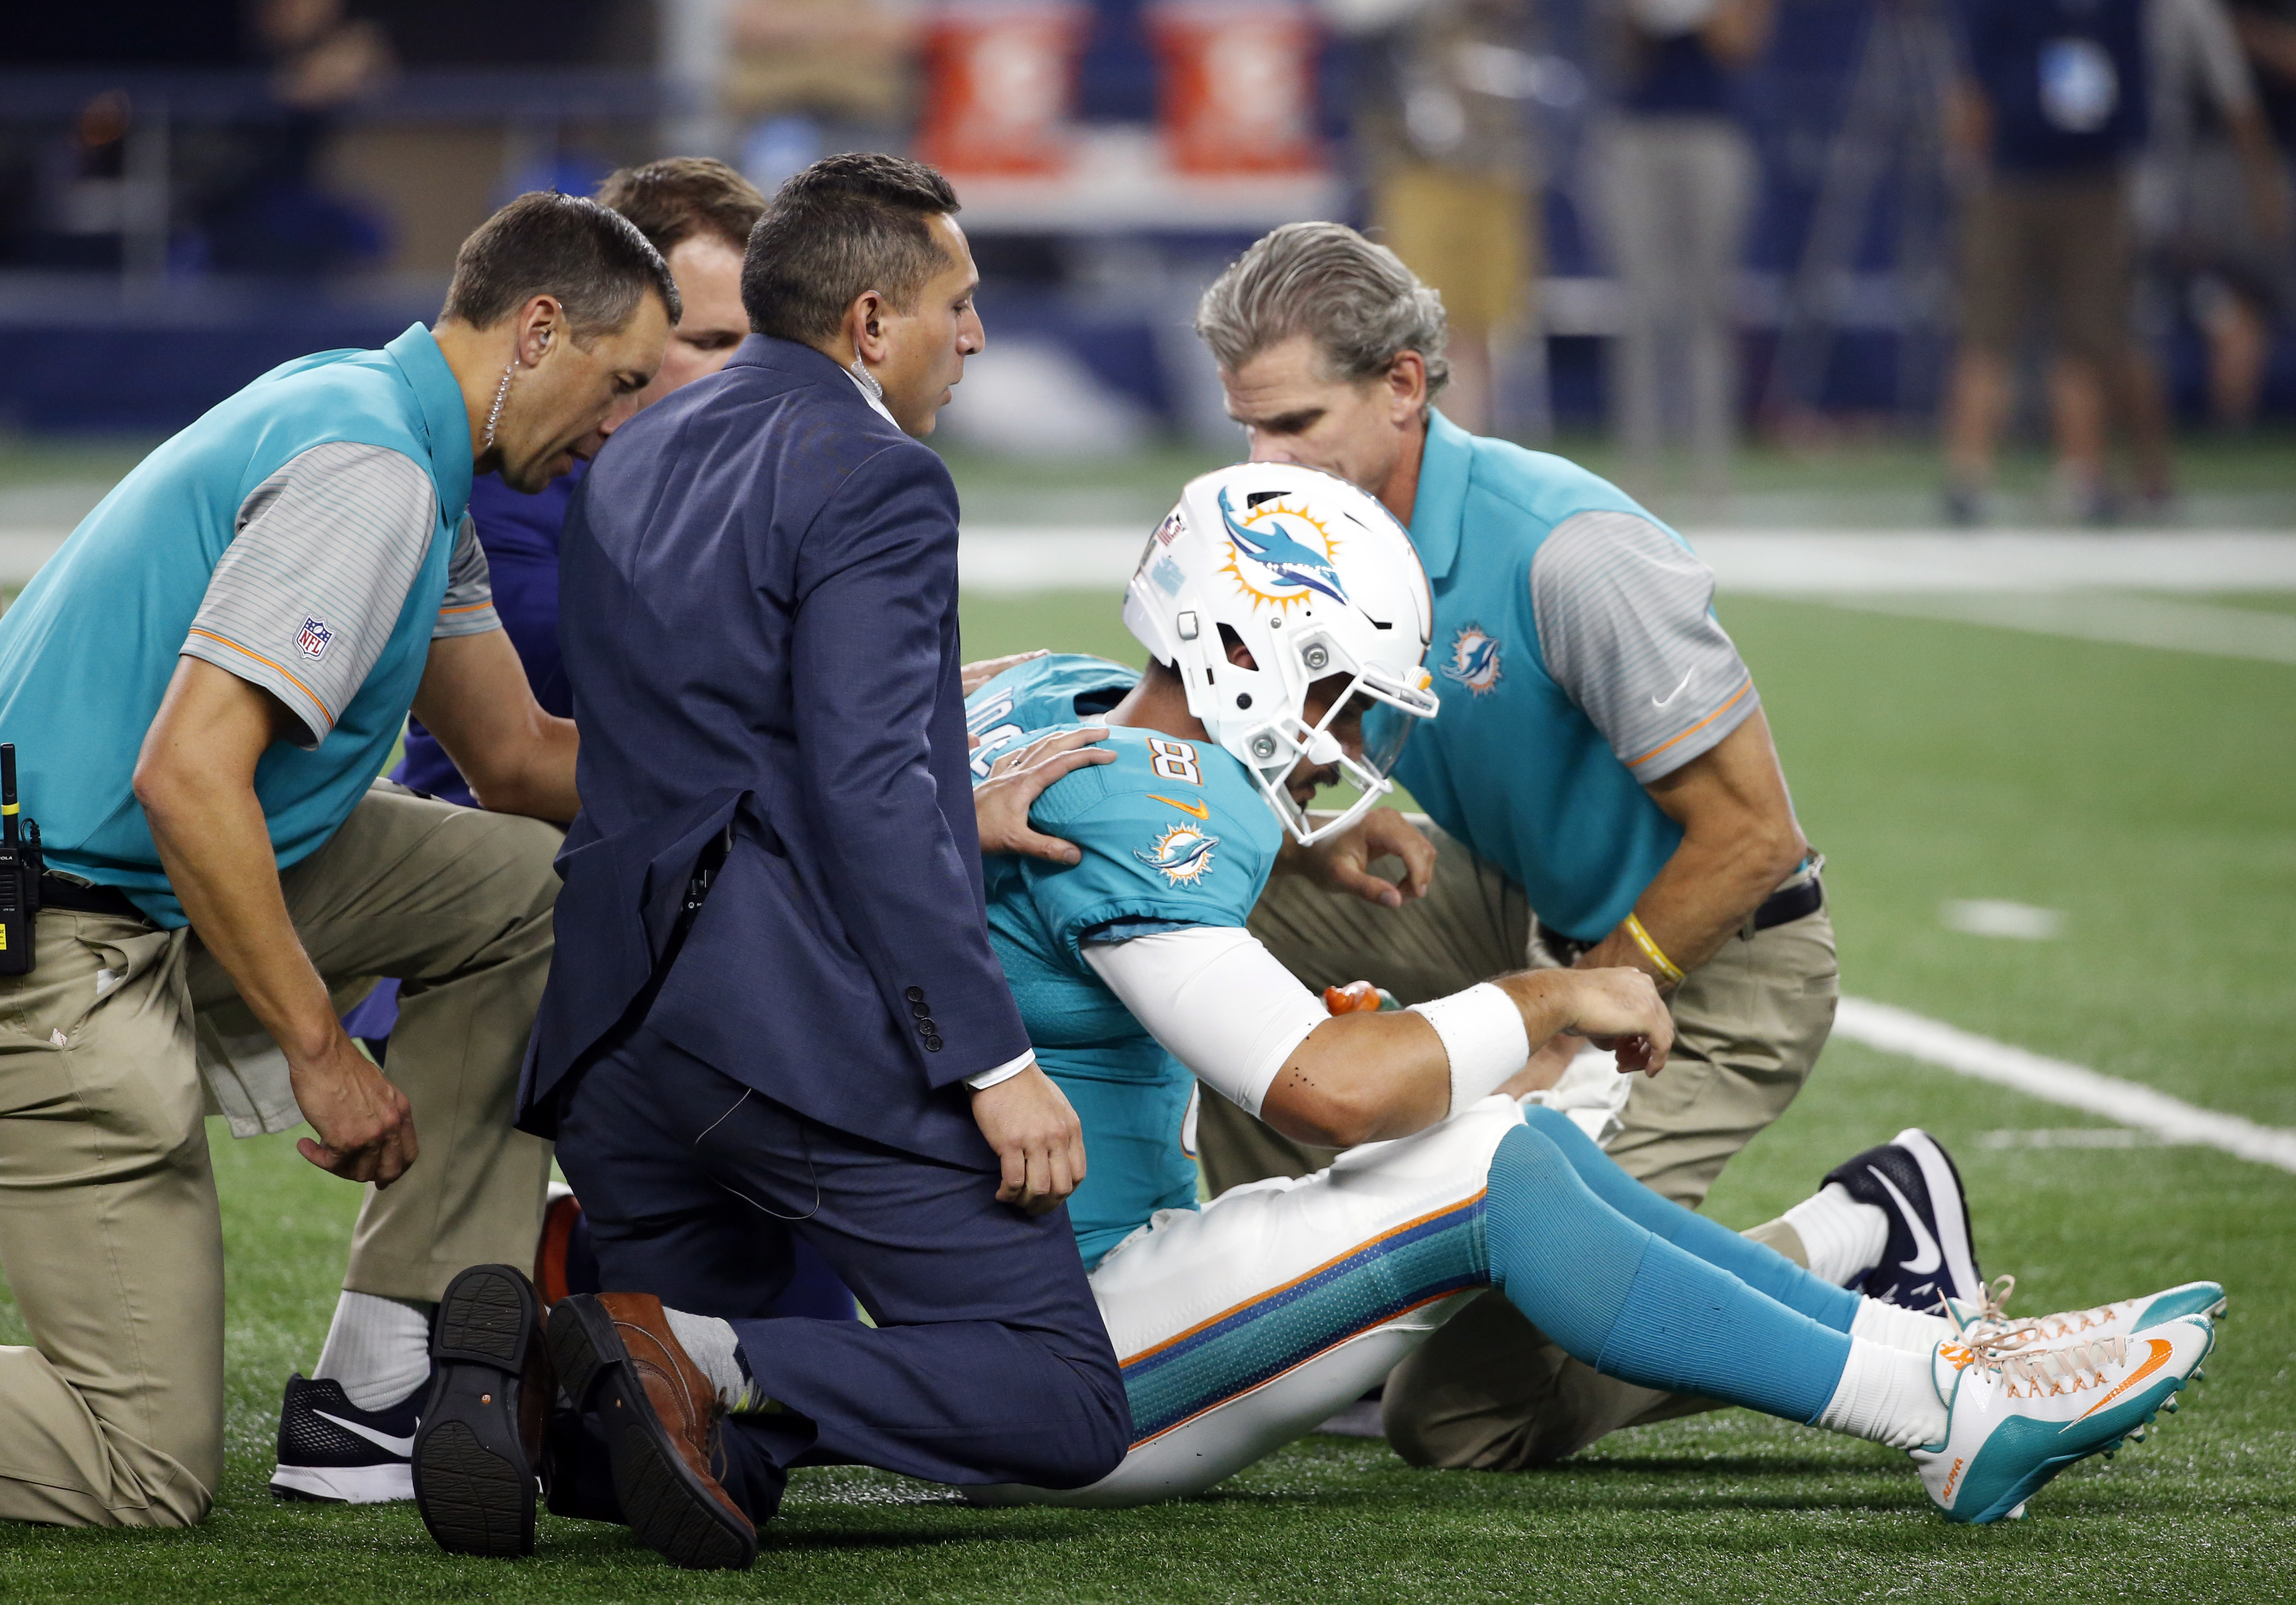 Miami Dolphins quarterback Matt Moore (8) is helped by staff after suffering an unknown injury in the first half of an NFL preseason football game against the Dallas Cowboys, Friday, Aug. 19, 2016, in Arlington, Texas. (AP Photo/Michael Ainsworth)